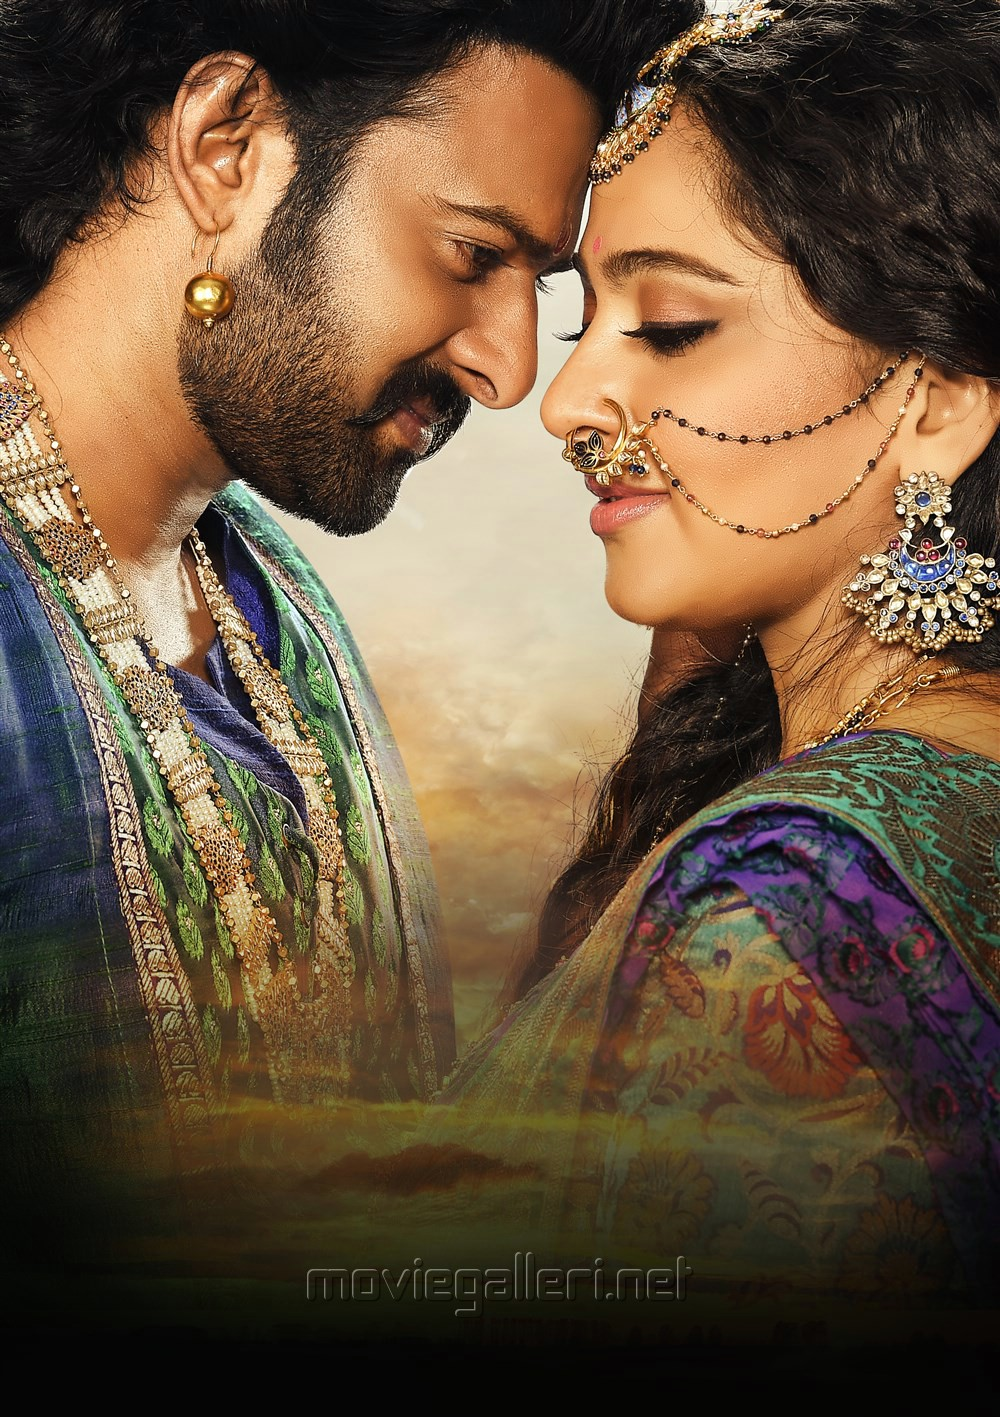 Prabhas And Anushka In Bahubali Picture 1204925 | Prab...